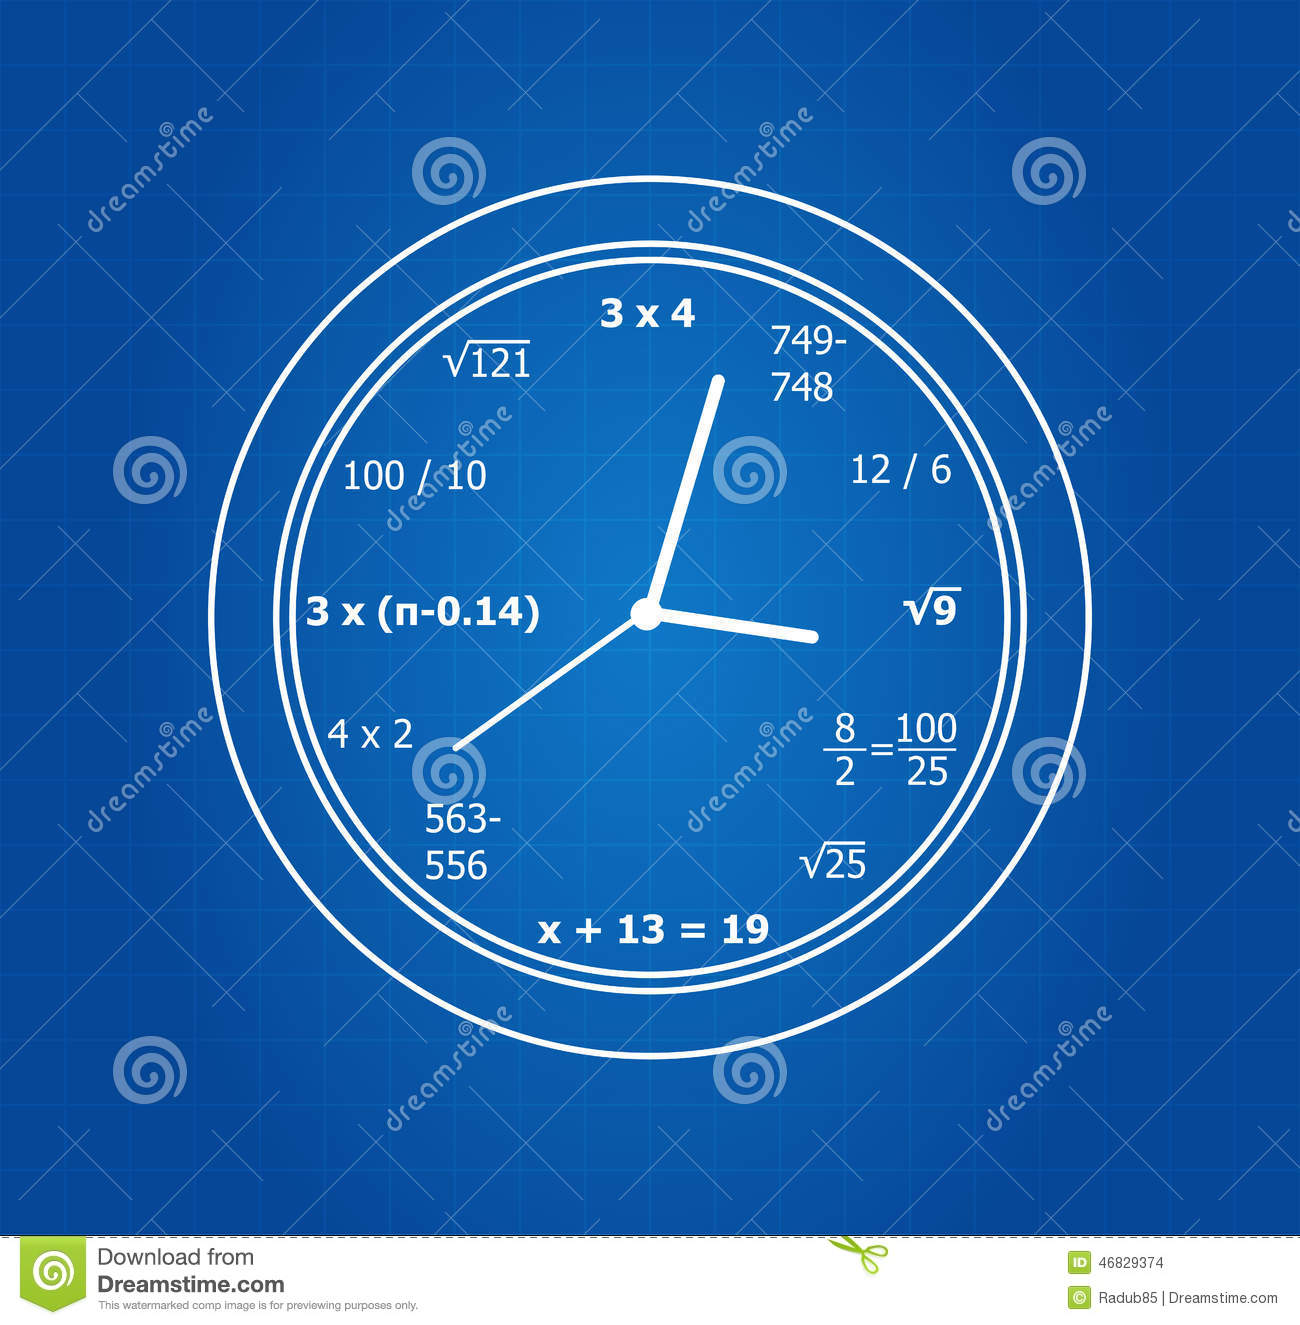 Equations stock illustrations 741 equations stock illustrations mathematical equations clock on blueprint stock images malvernweather Image collections